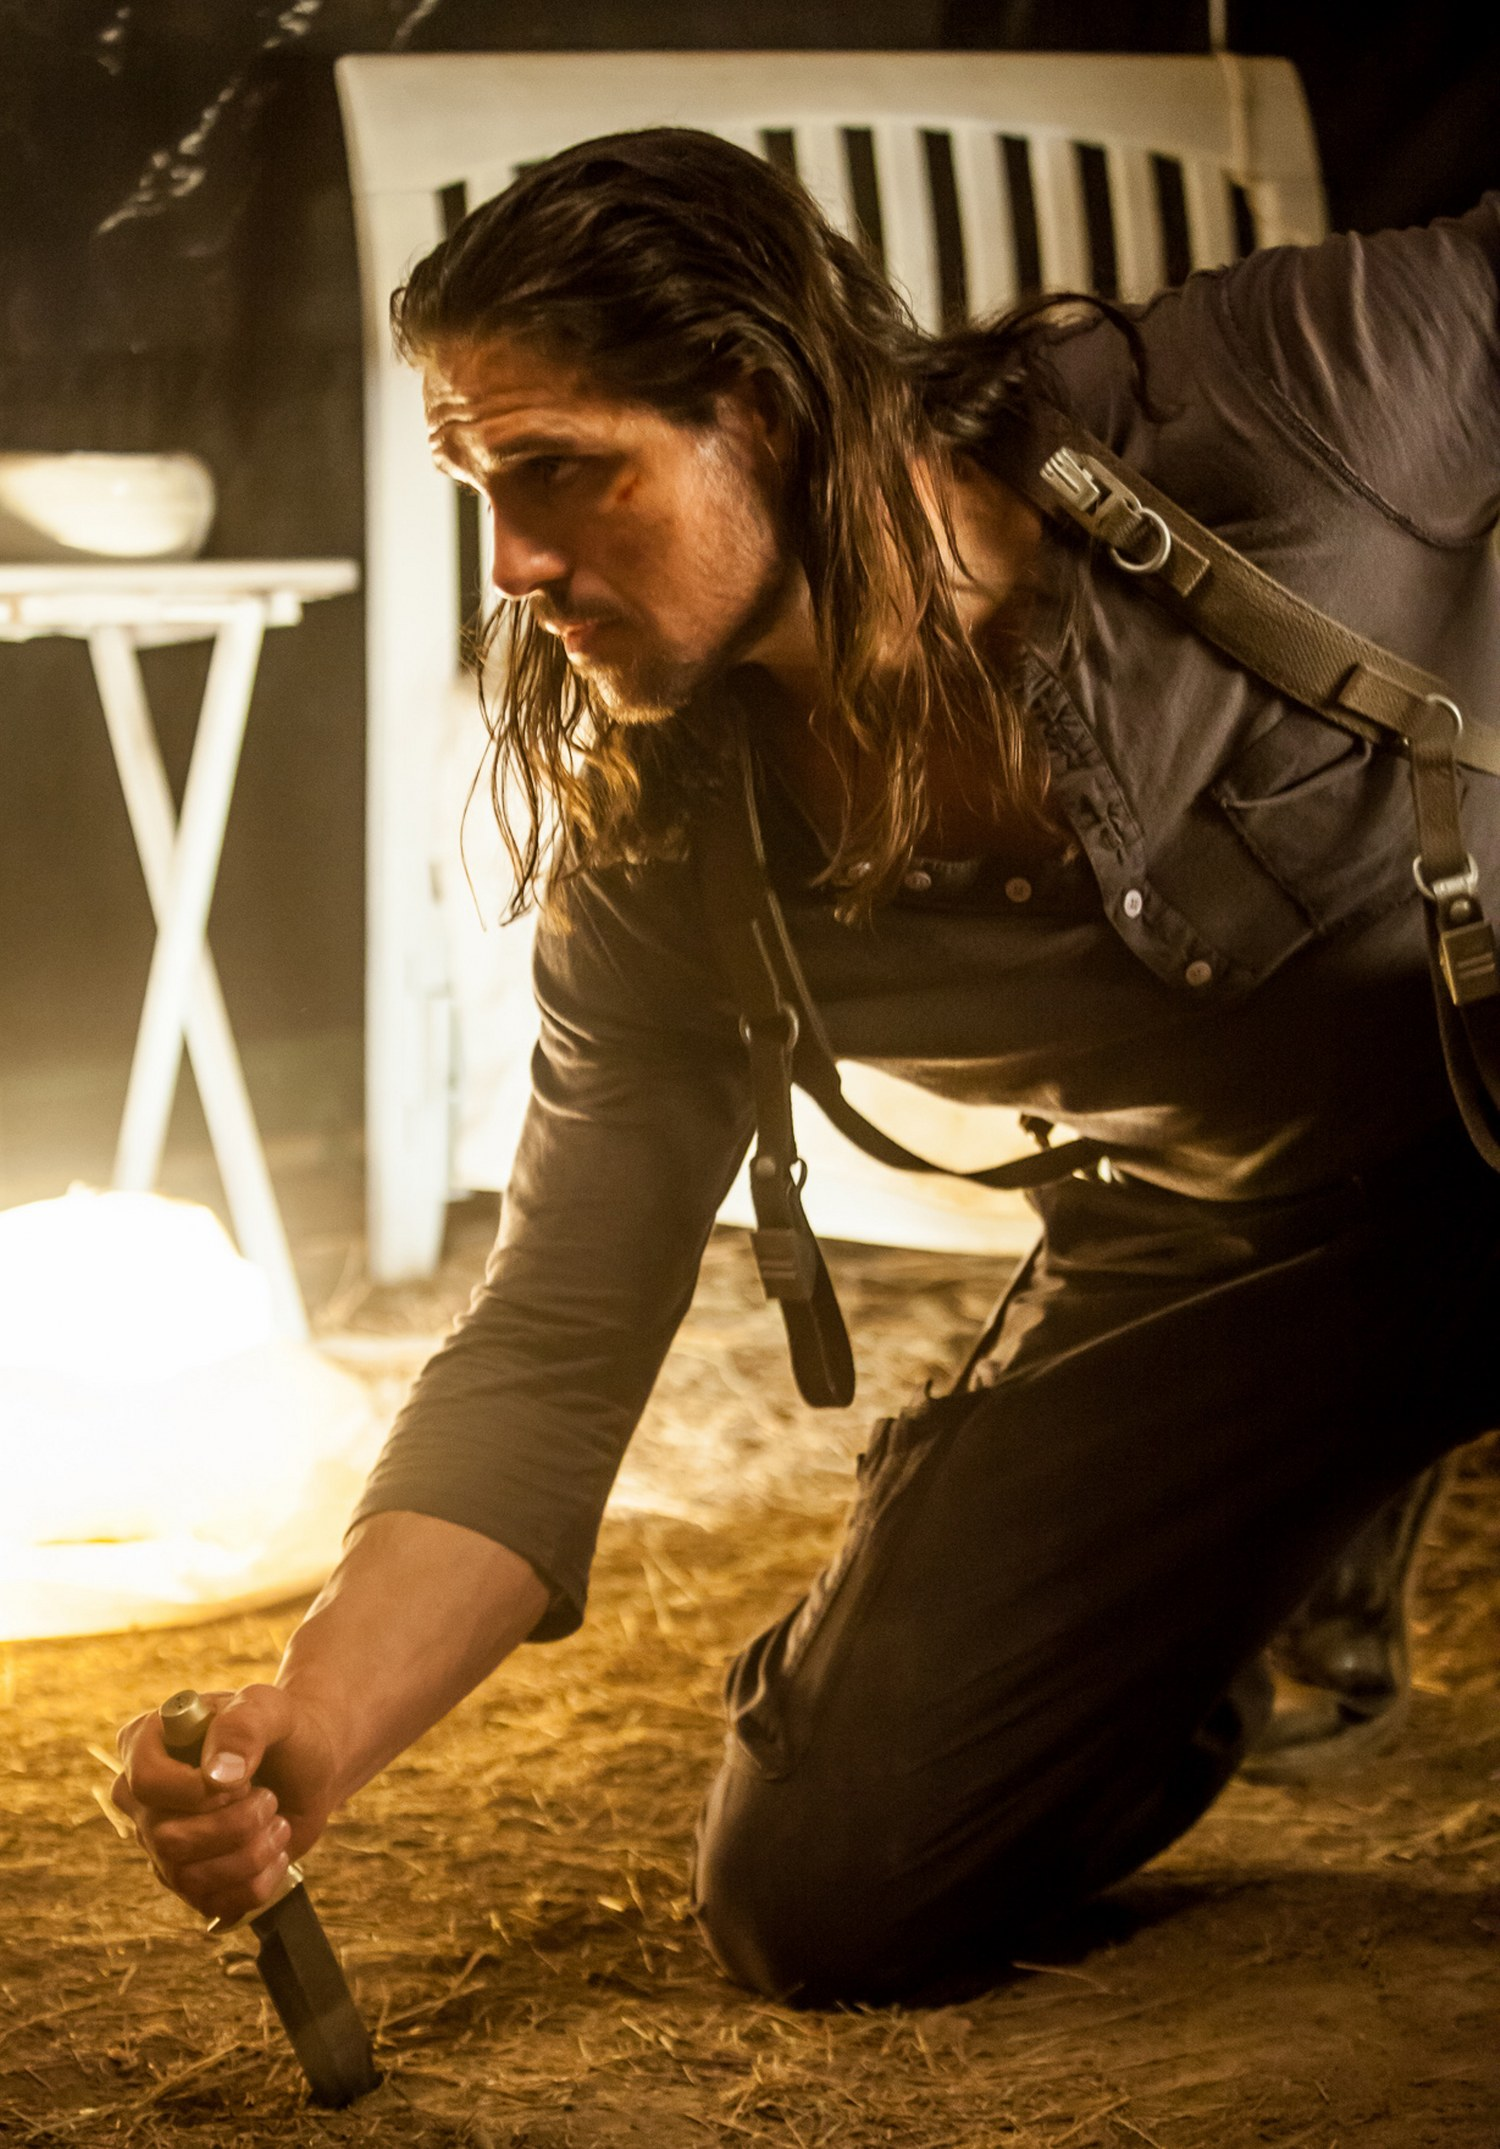 John Hennigan 2 – 3 Hours Until Dead. Photo by Ali Donze